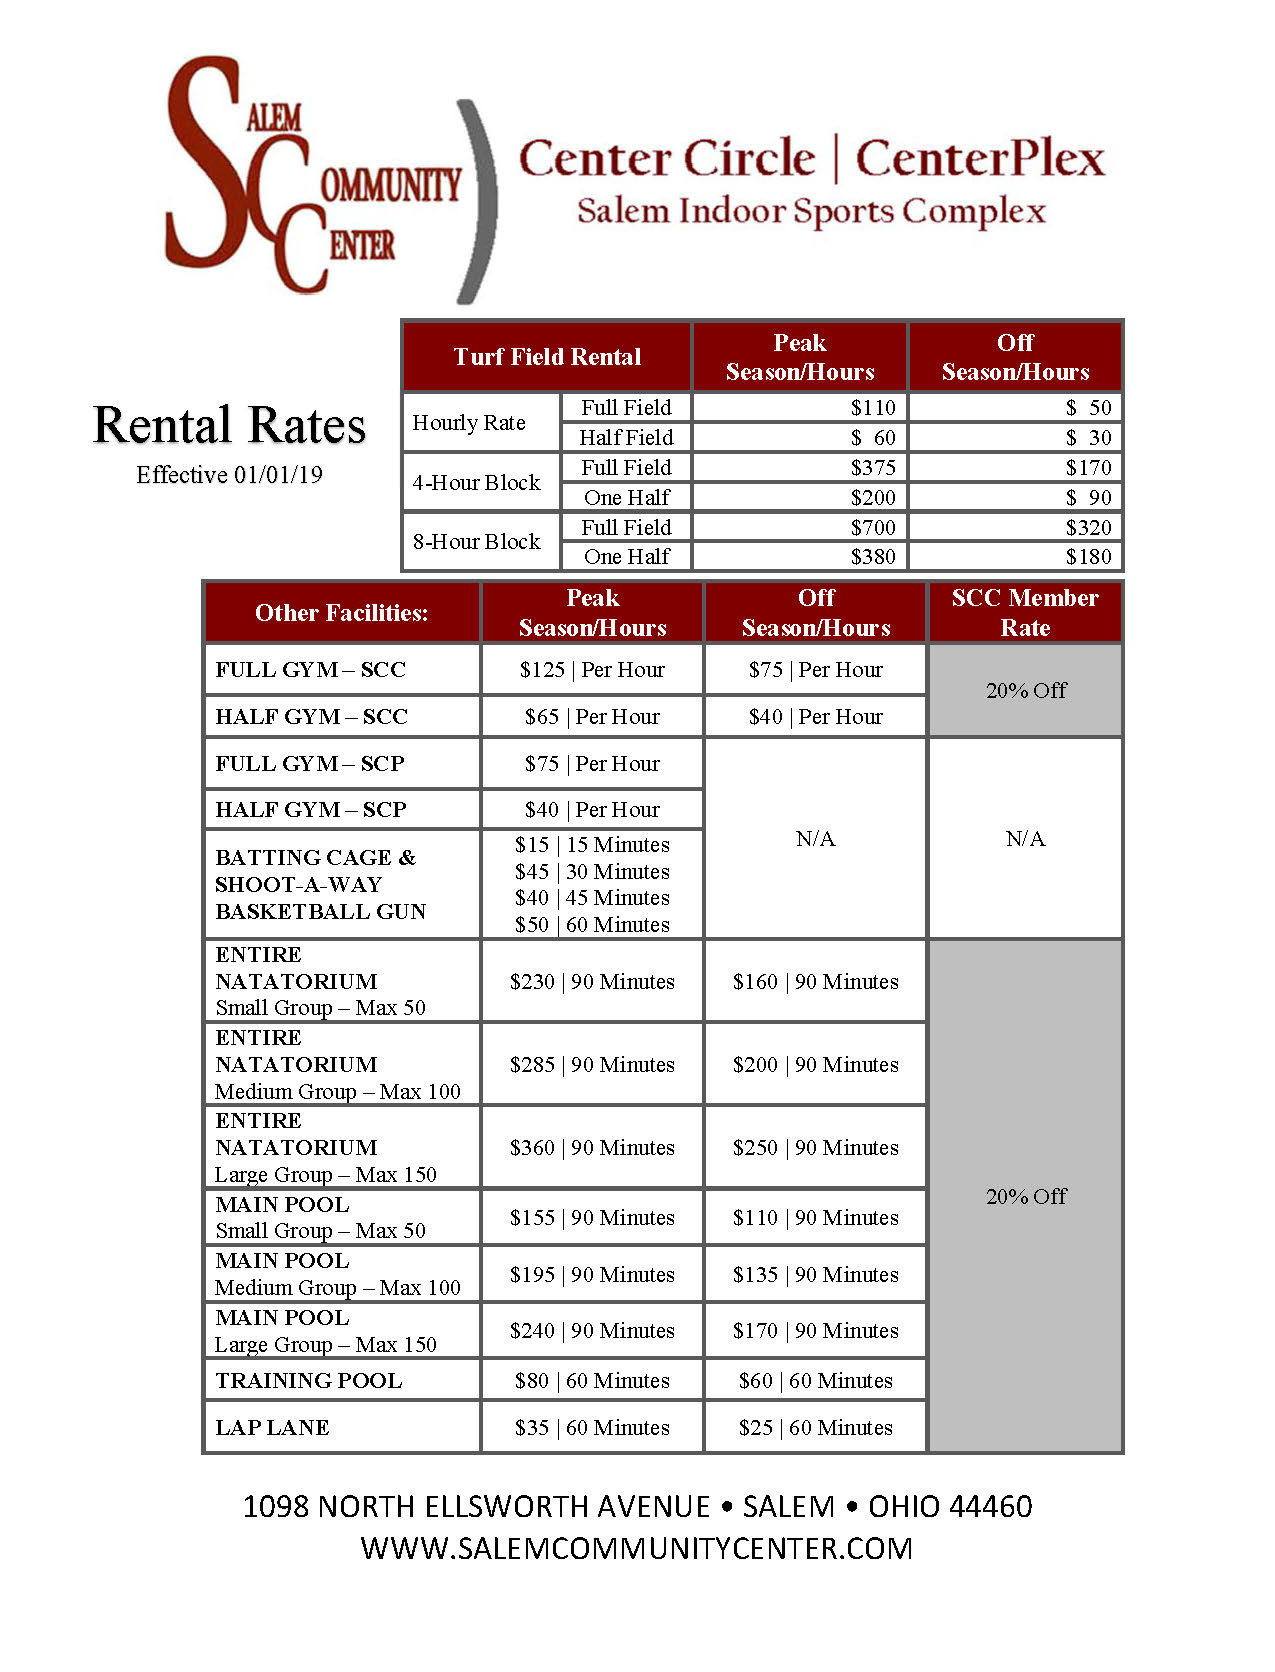 SCC SCP and CC Exclusive Activity Area Rental Prices 010119